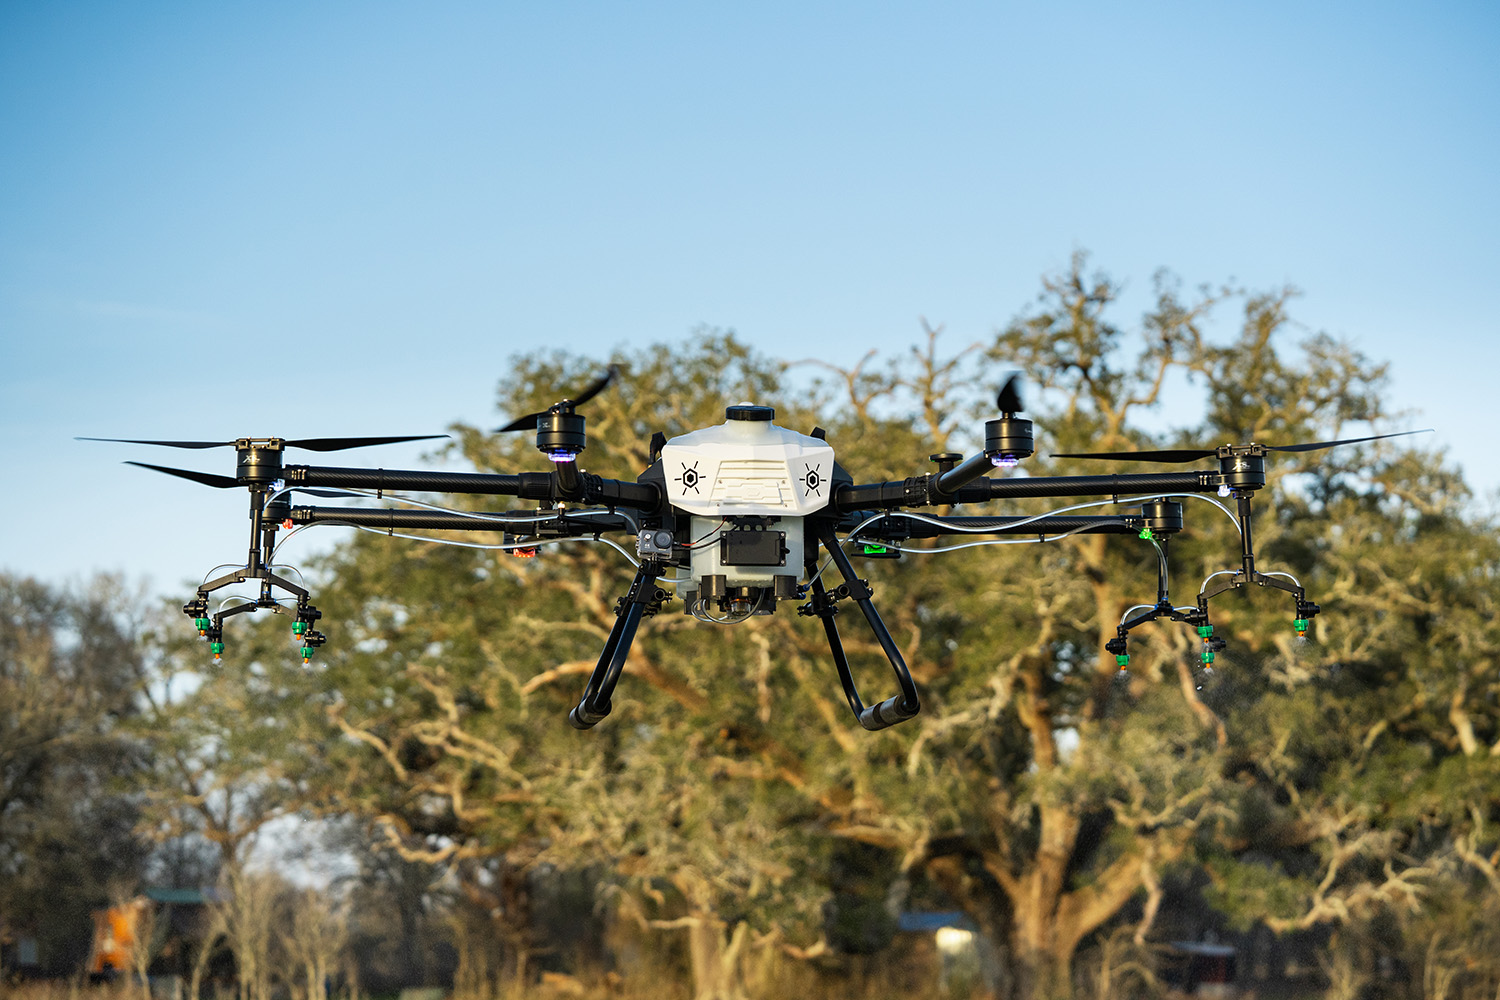 large agricultural spray drone flying